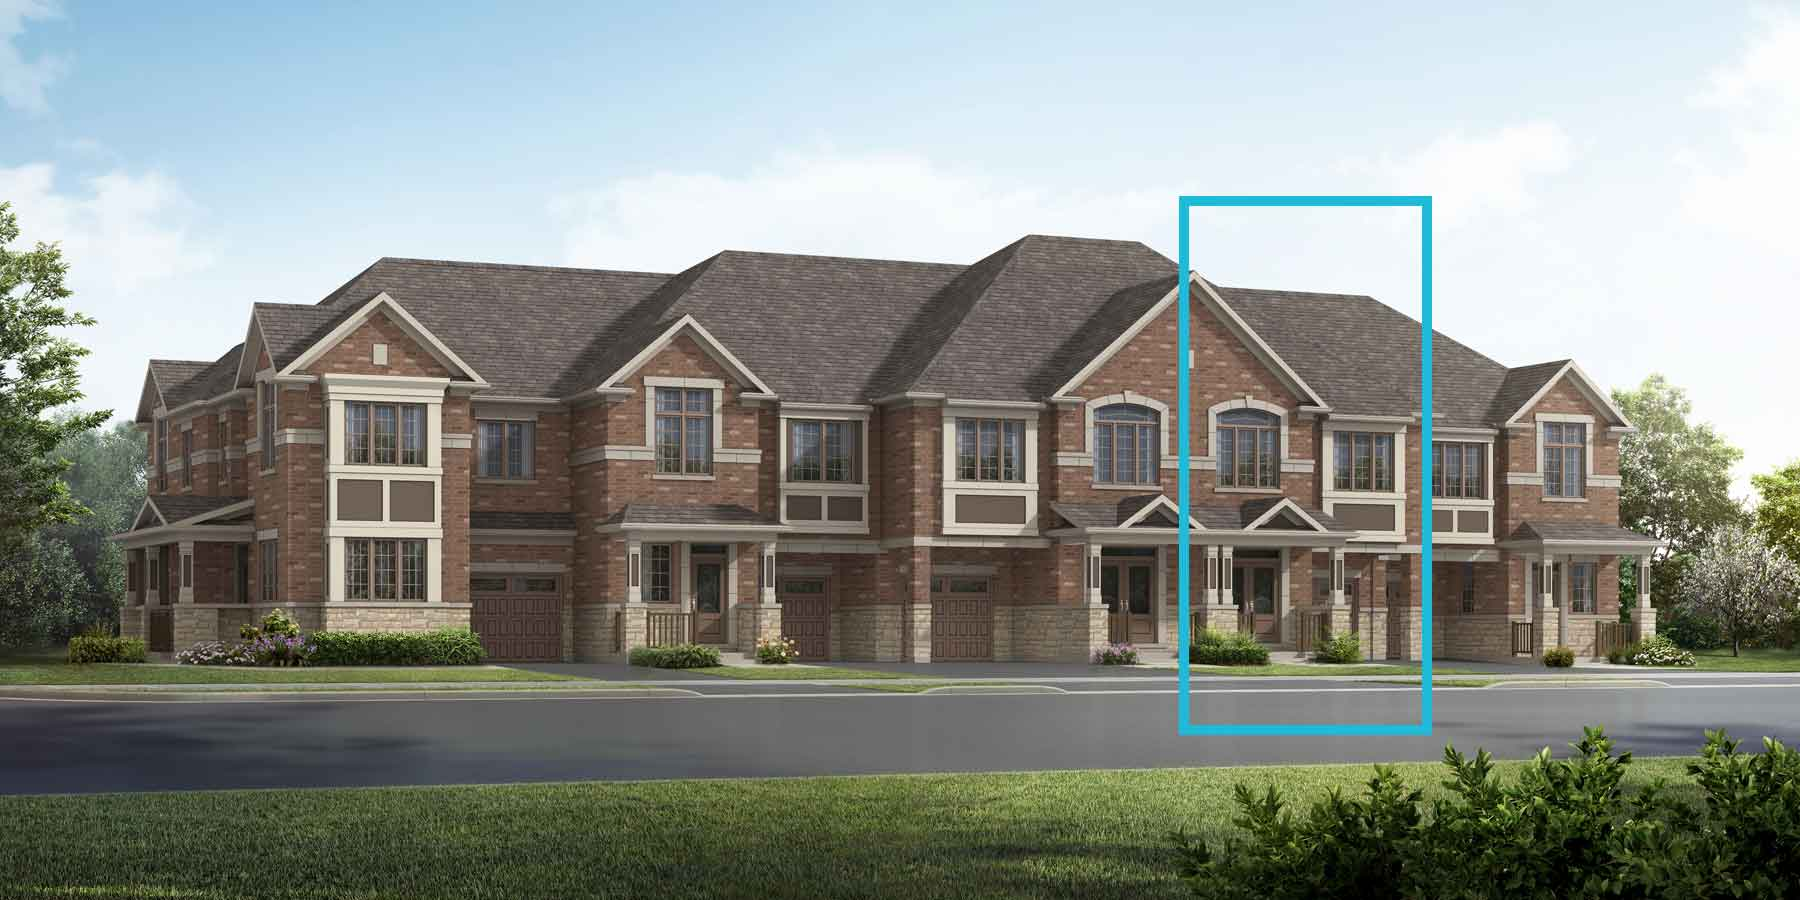 Shamrock Plan TownHomes at Springwater in Markham Ontario by Mattamy Homes